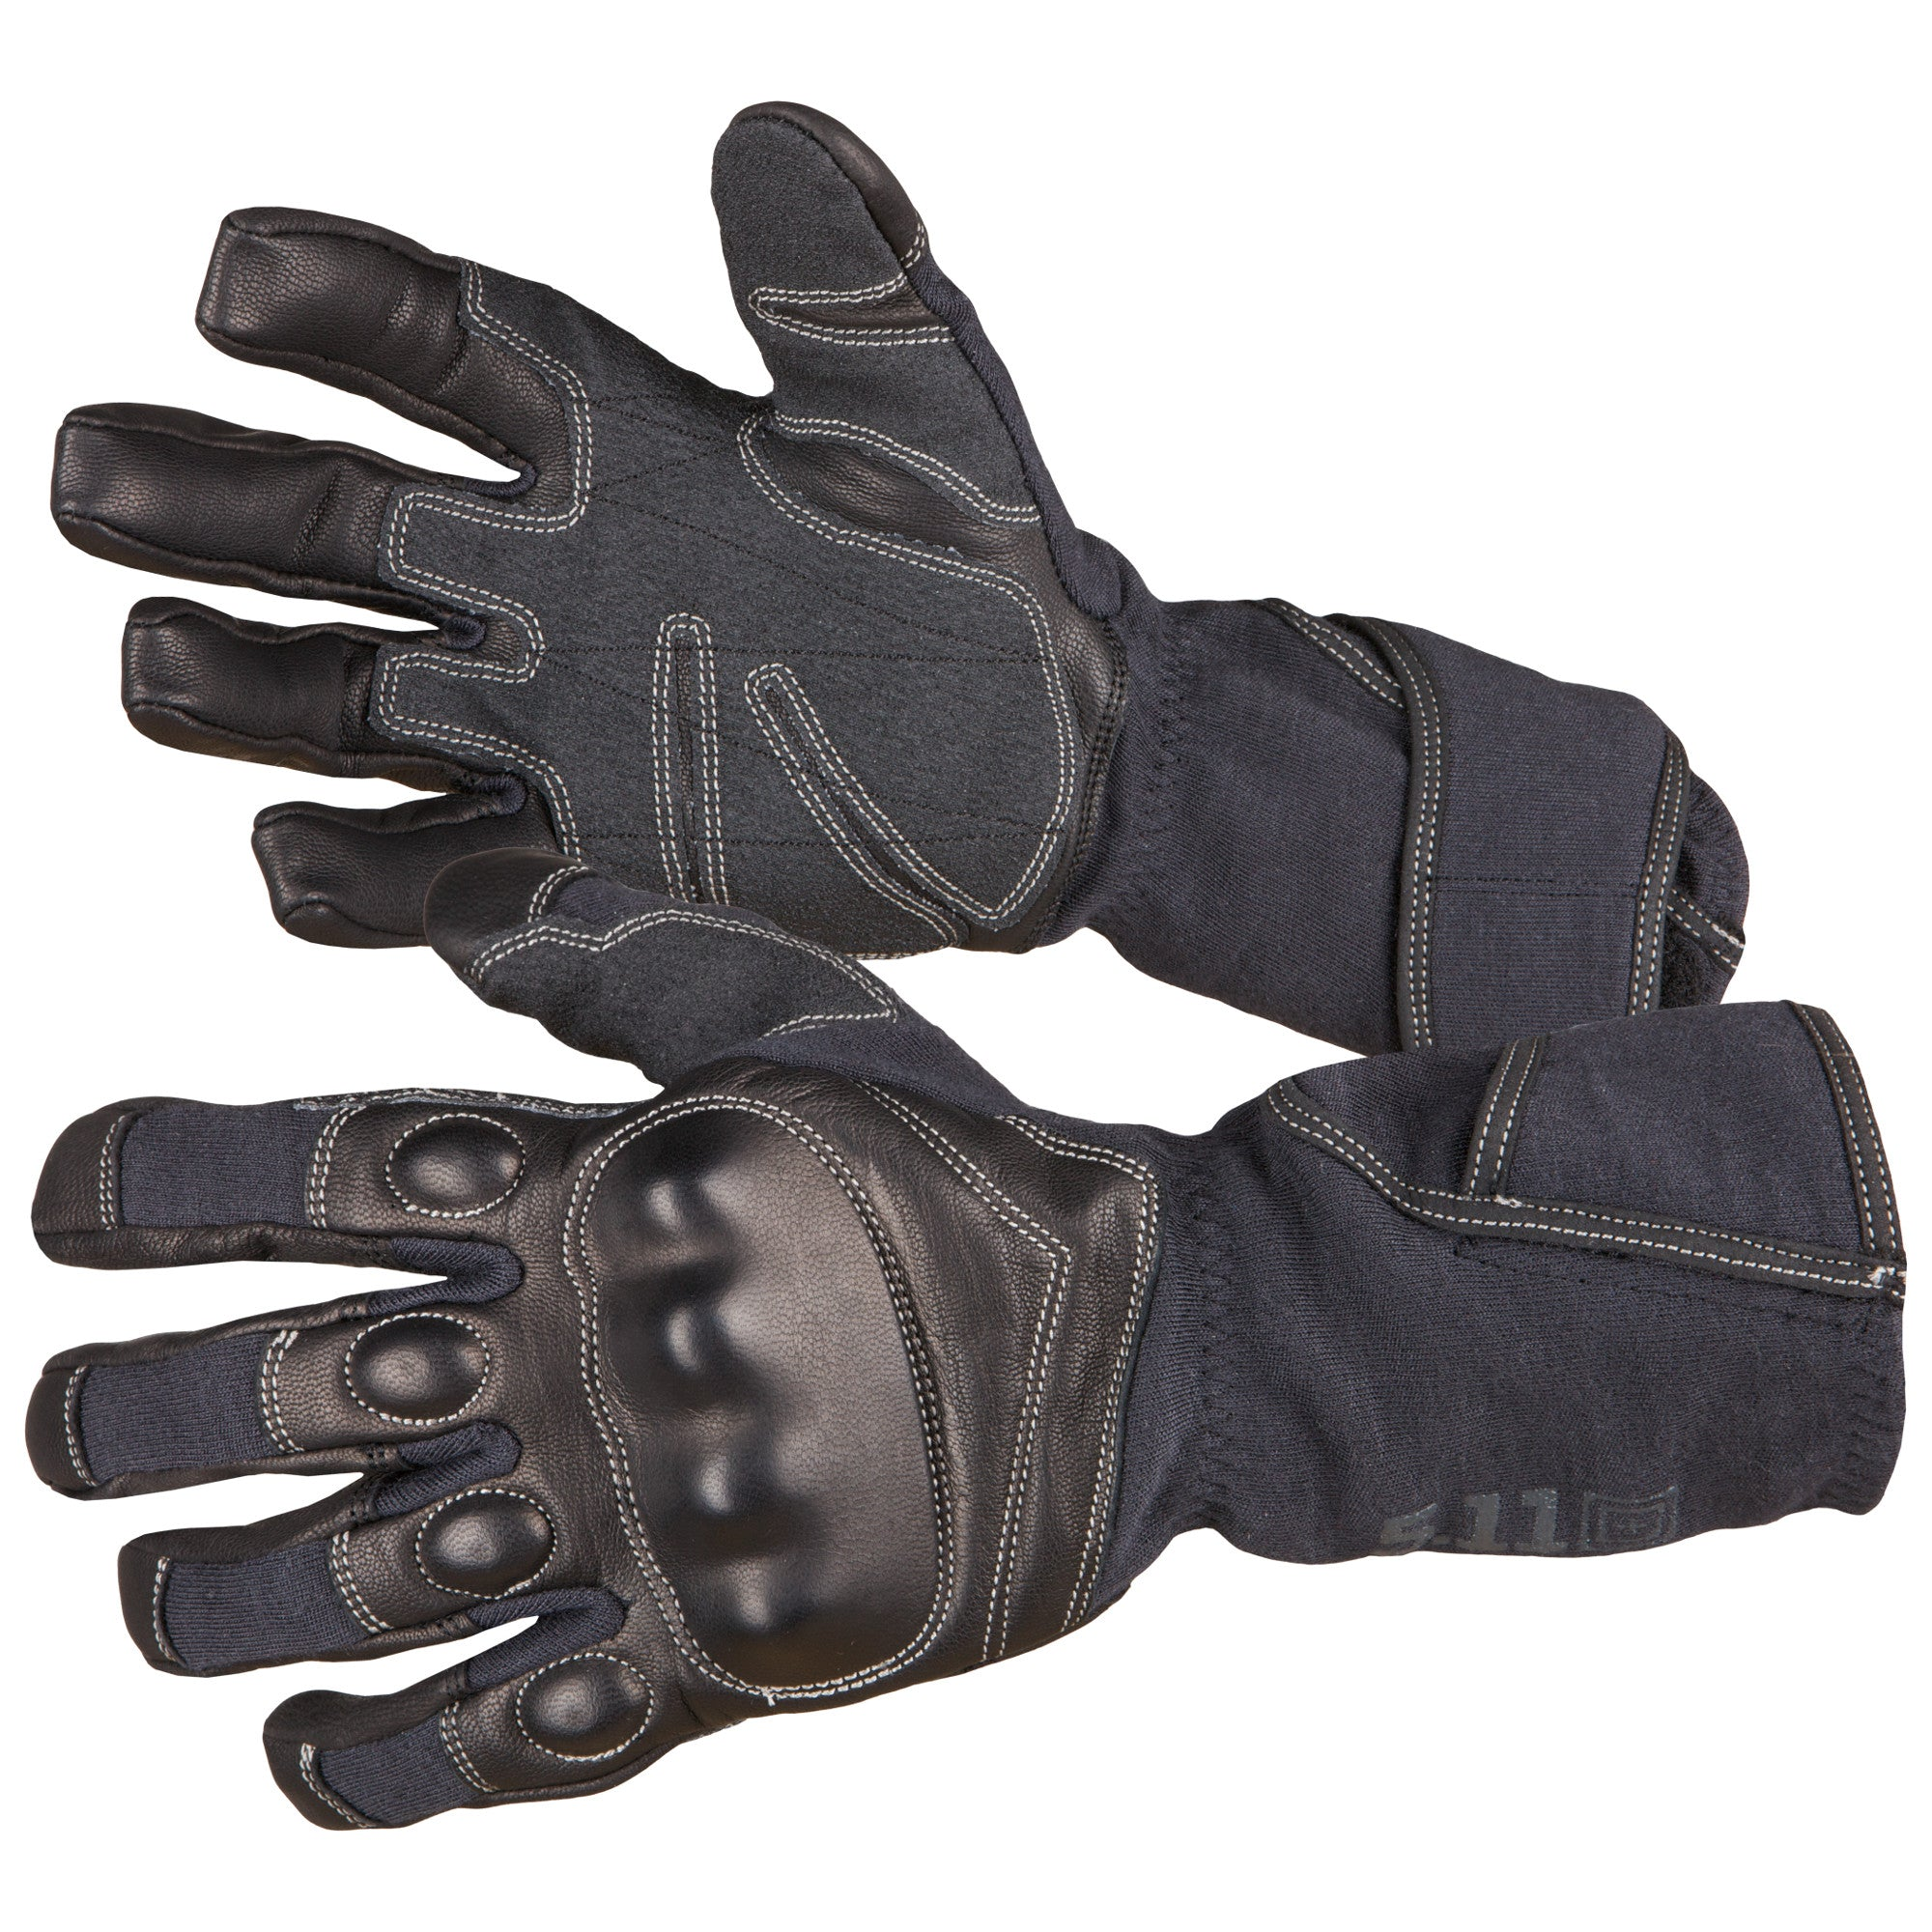 XPRT HARD TIME GLOVE